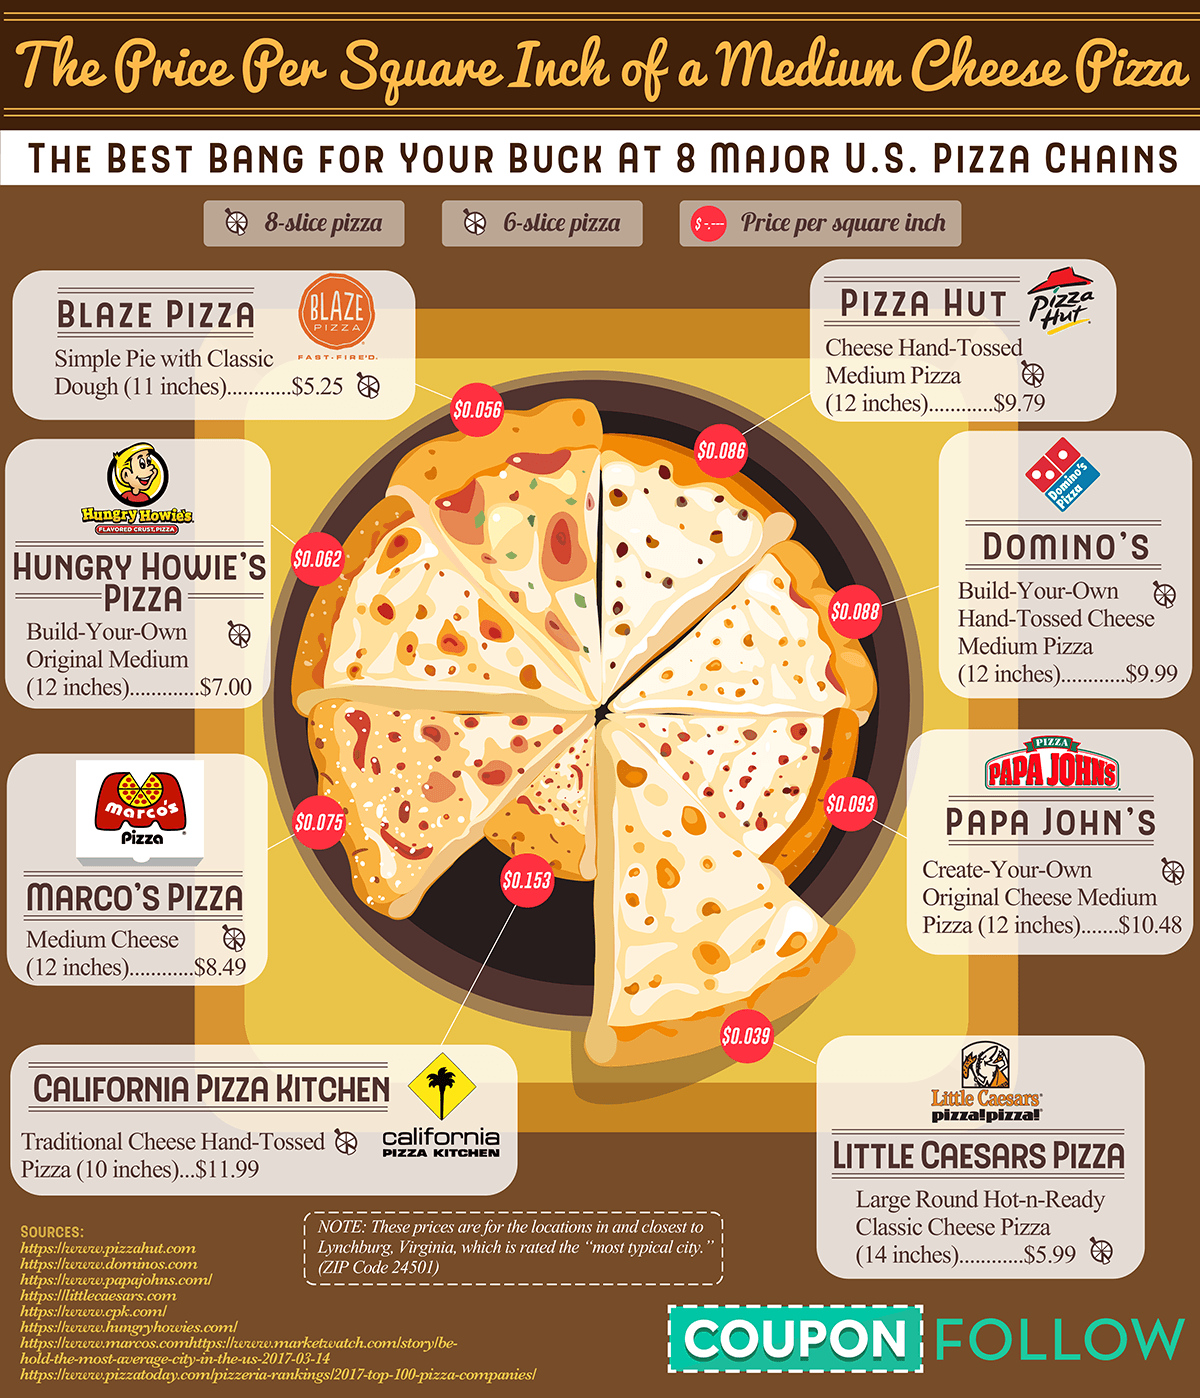 These Pizza Chains Are Where You Can Get The Best Bang For Your Buck